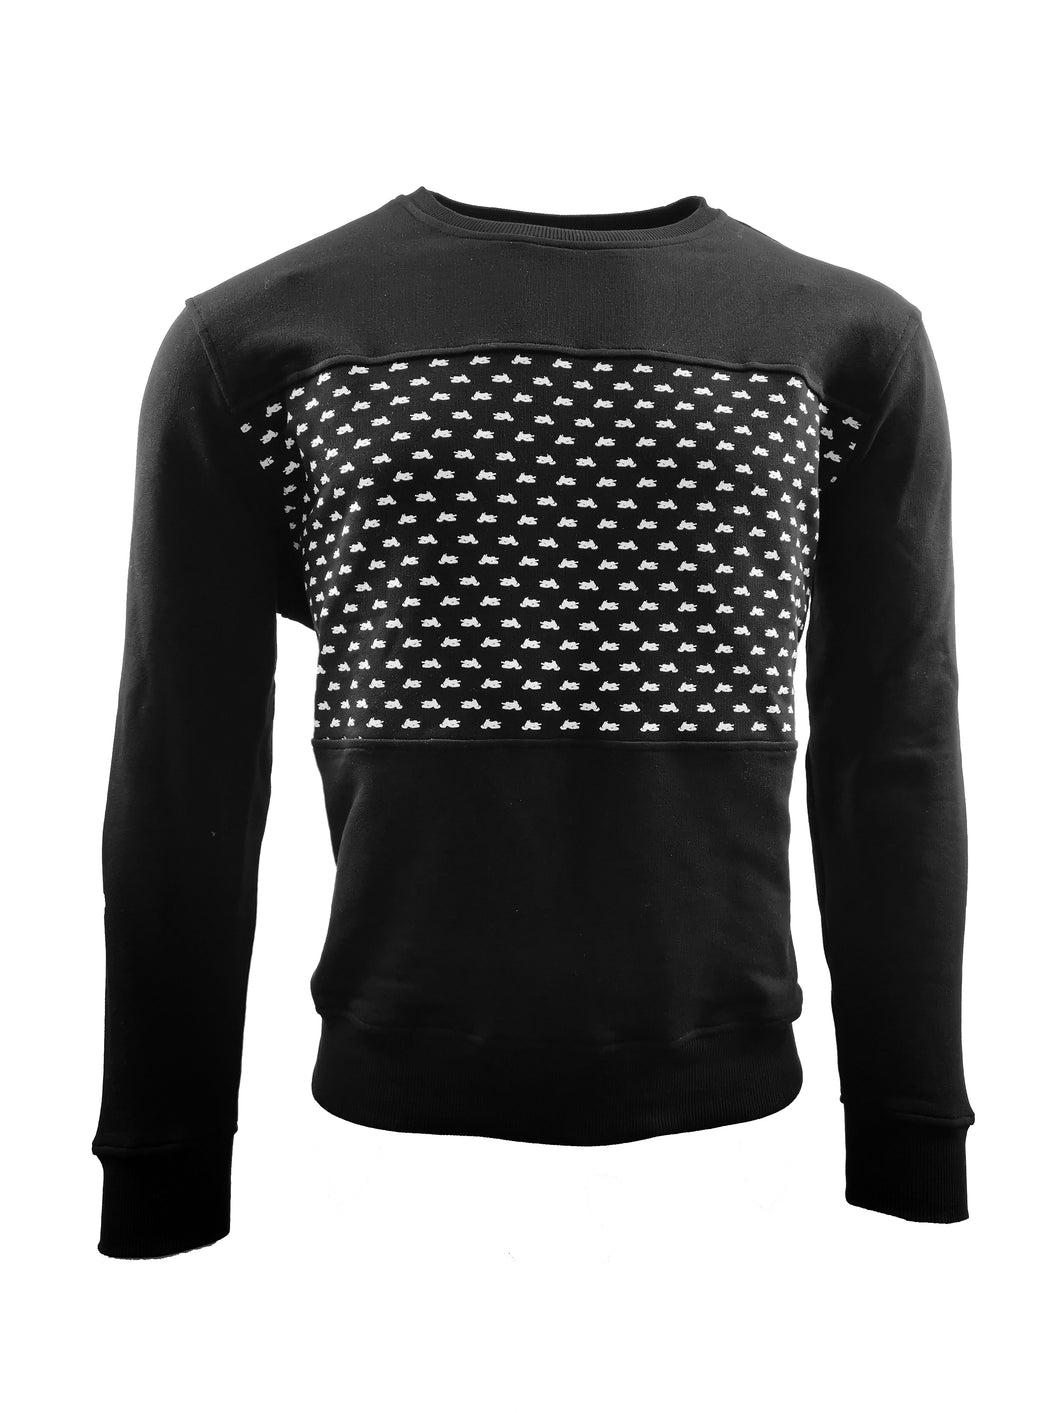 Sweatshirt skoter - [Style_of_Norrland] snowmobile sweatshirt